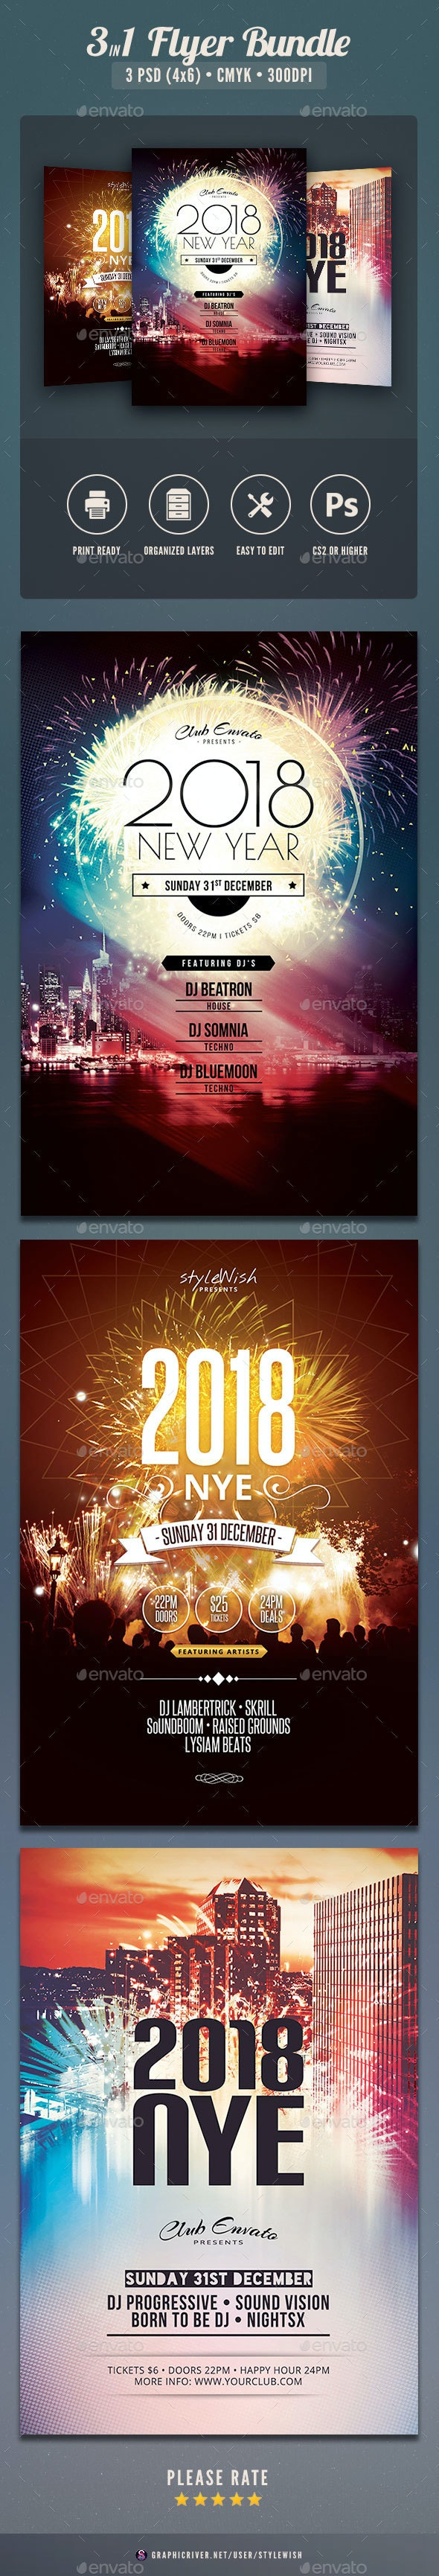 New Year Flyer Bundle Vol.02 - Clubs & Parties Events